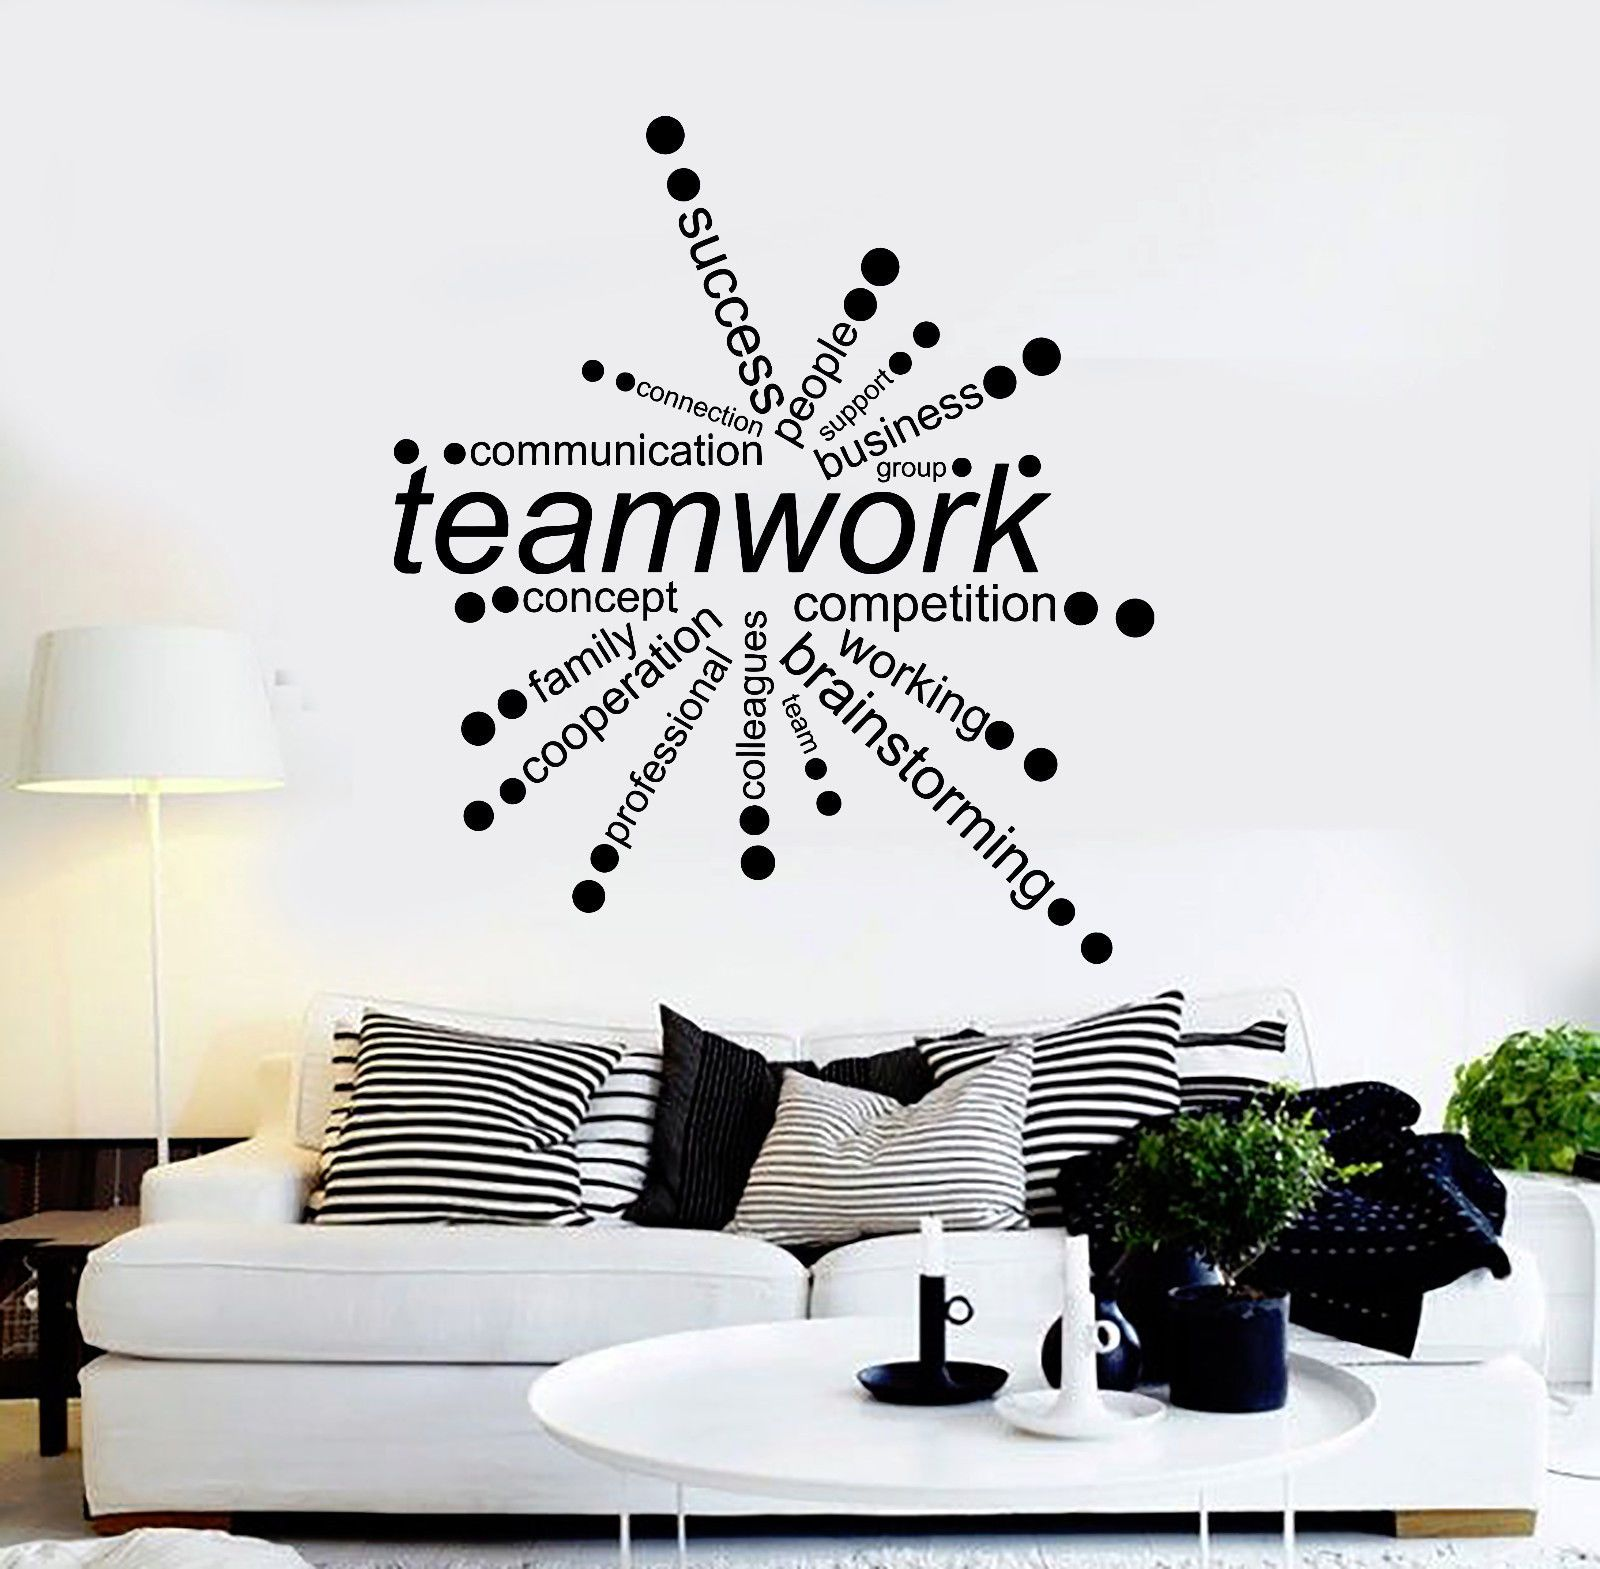 Details About Vinyl Wall Decal Teamwork Words Office Decor